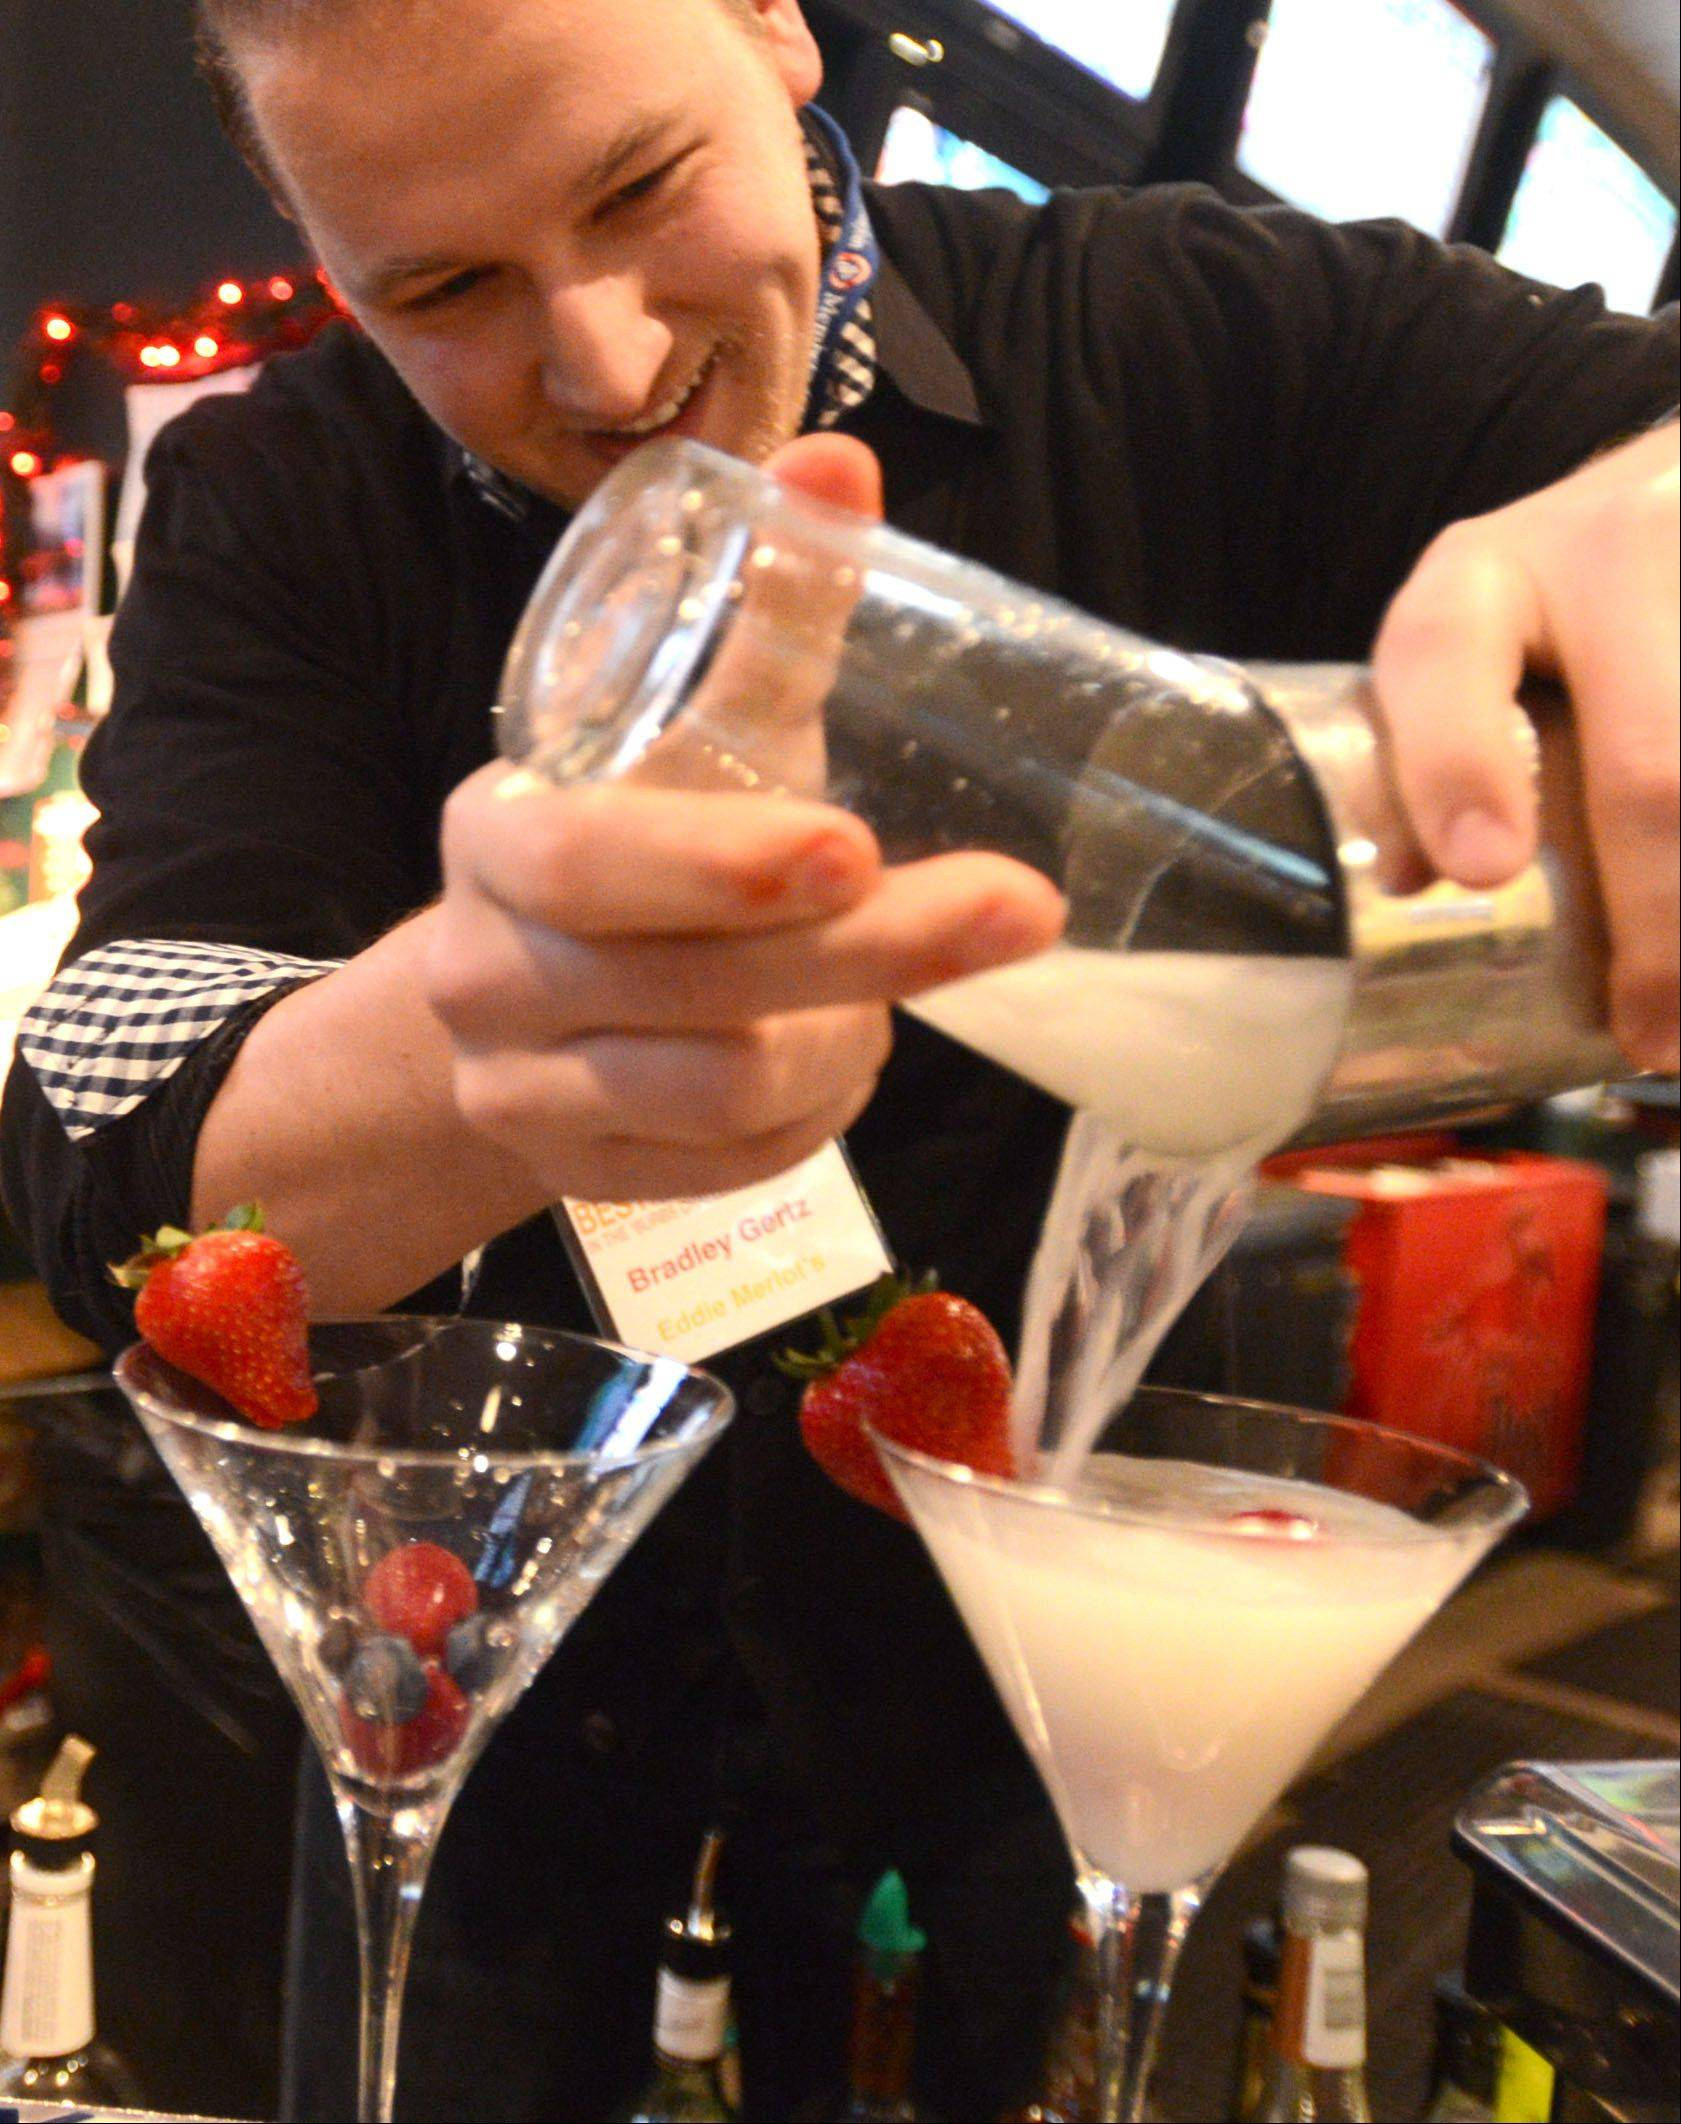 Mixologist Bradley Gertz of Eddie Merlot's Lincolnshire restaurant prepares the Berry White Martini during the Daily Herald's Best Martini in the 'Burbs Challenge at the At The Post Sports Bar & OTB in Elk Grove Village on Monday night.